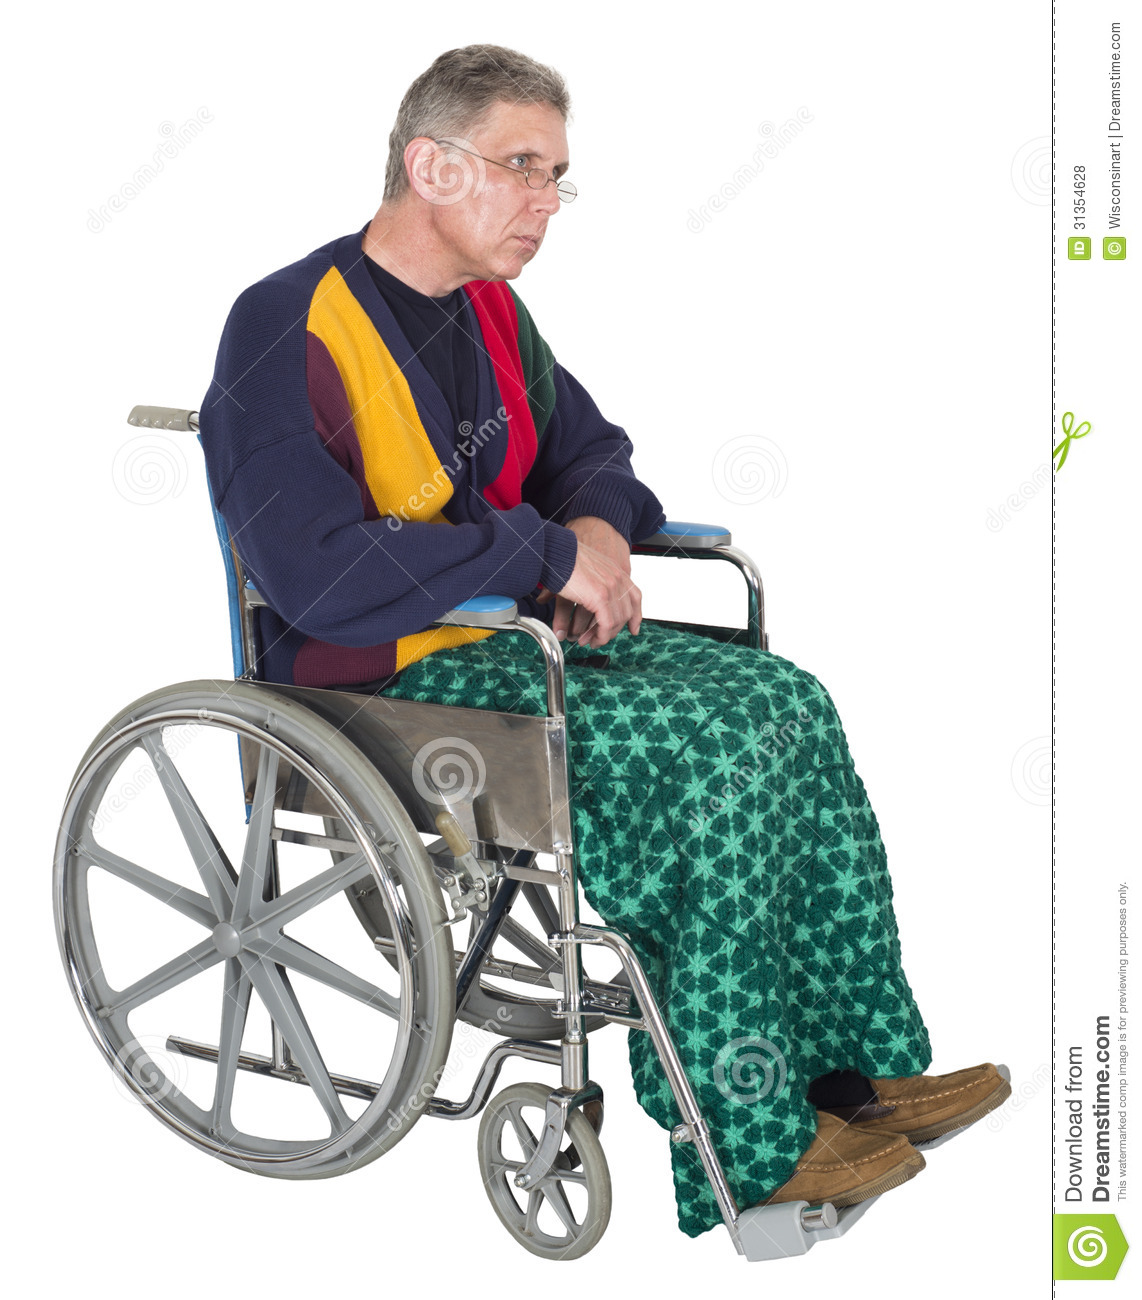 wheelchair man chair back covers canada sad lonely senior elderly isolated stock photo a sits in on white